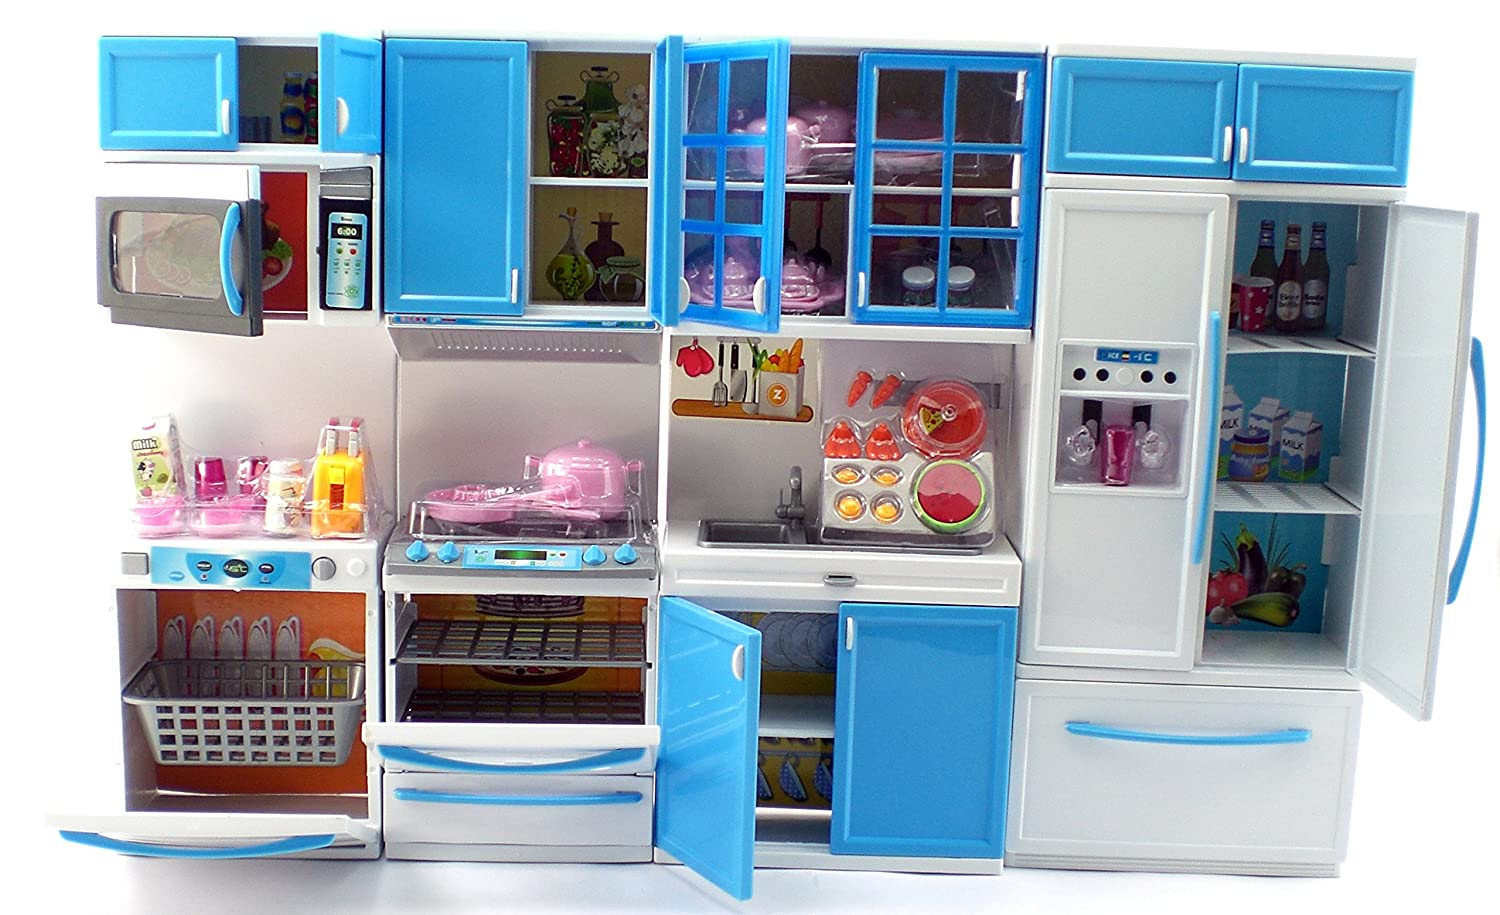 Amazon.com: Blue Deluxe My Modern Barbie Size Kitchen Stove, Fridg ...